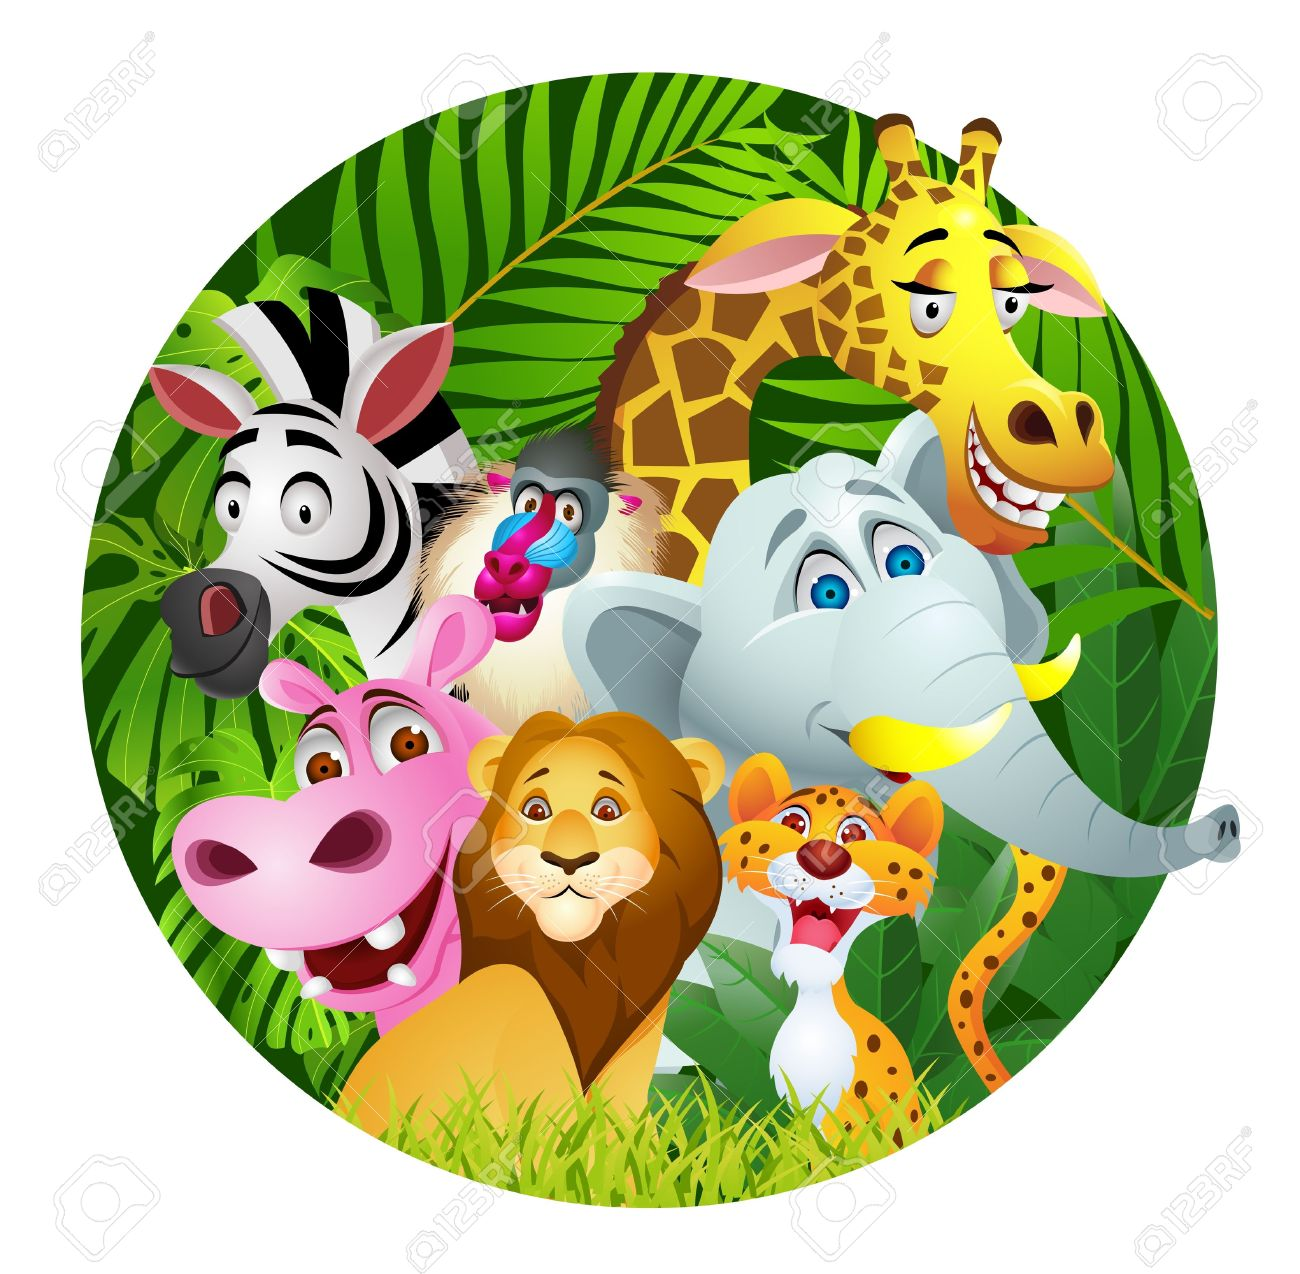 Free jungle clipart clipart library stock Free Jungle Clipart | Free download best Free Jungle Clipart on ... clipart library stock